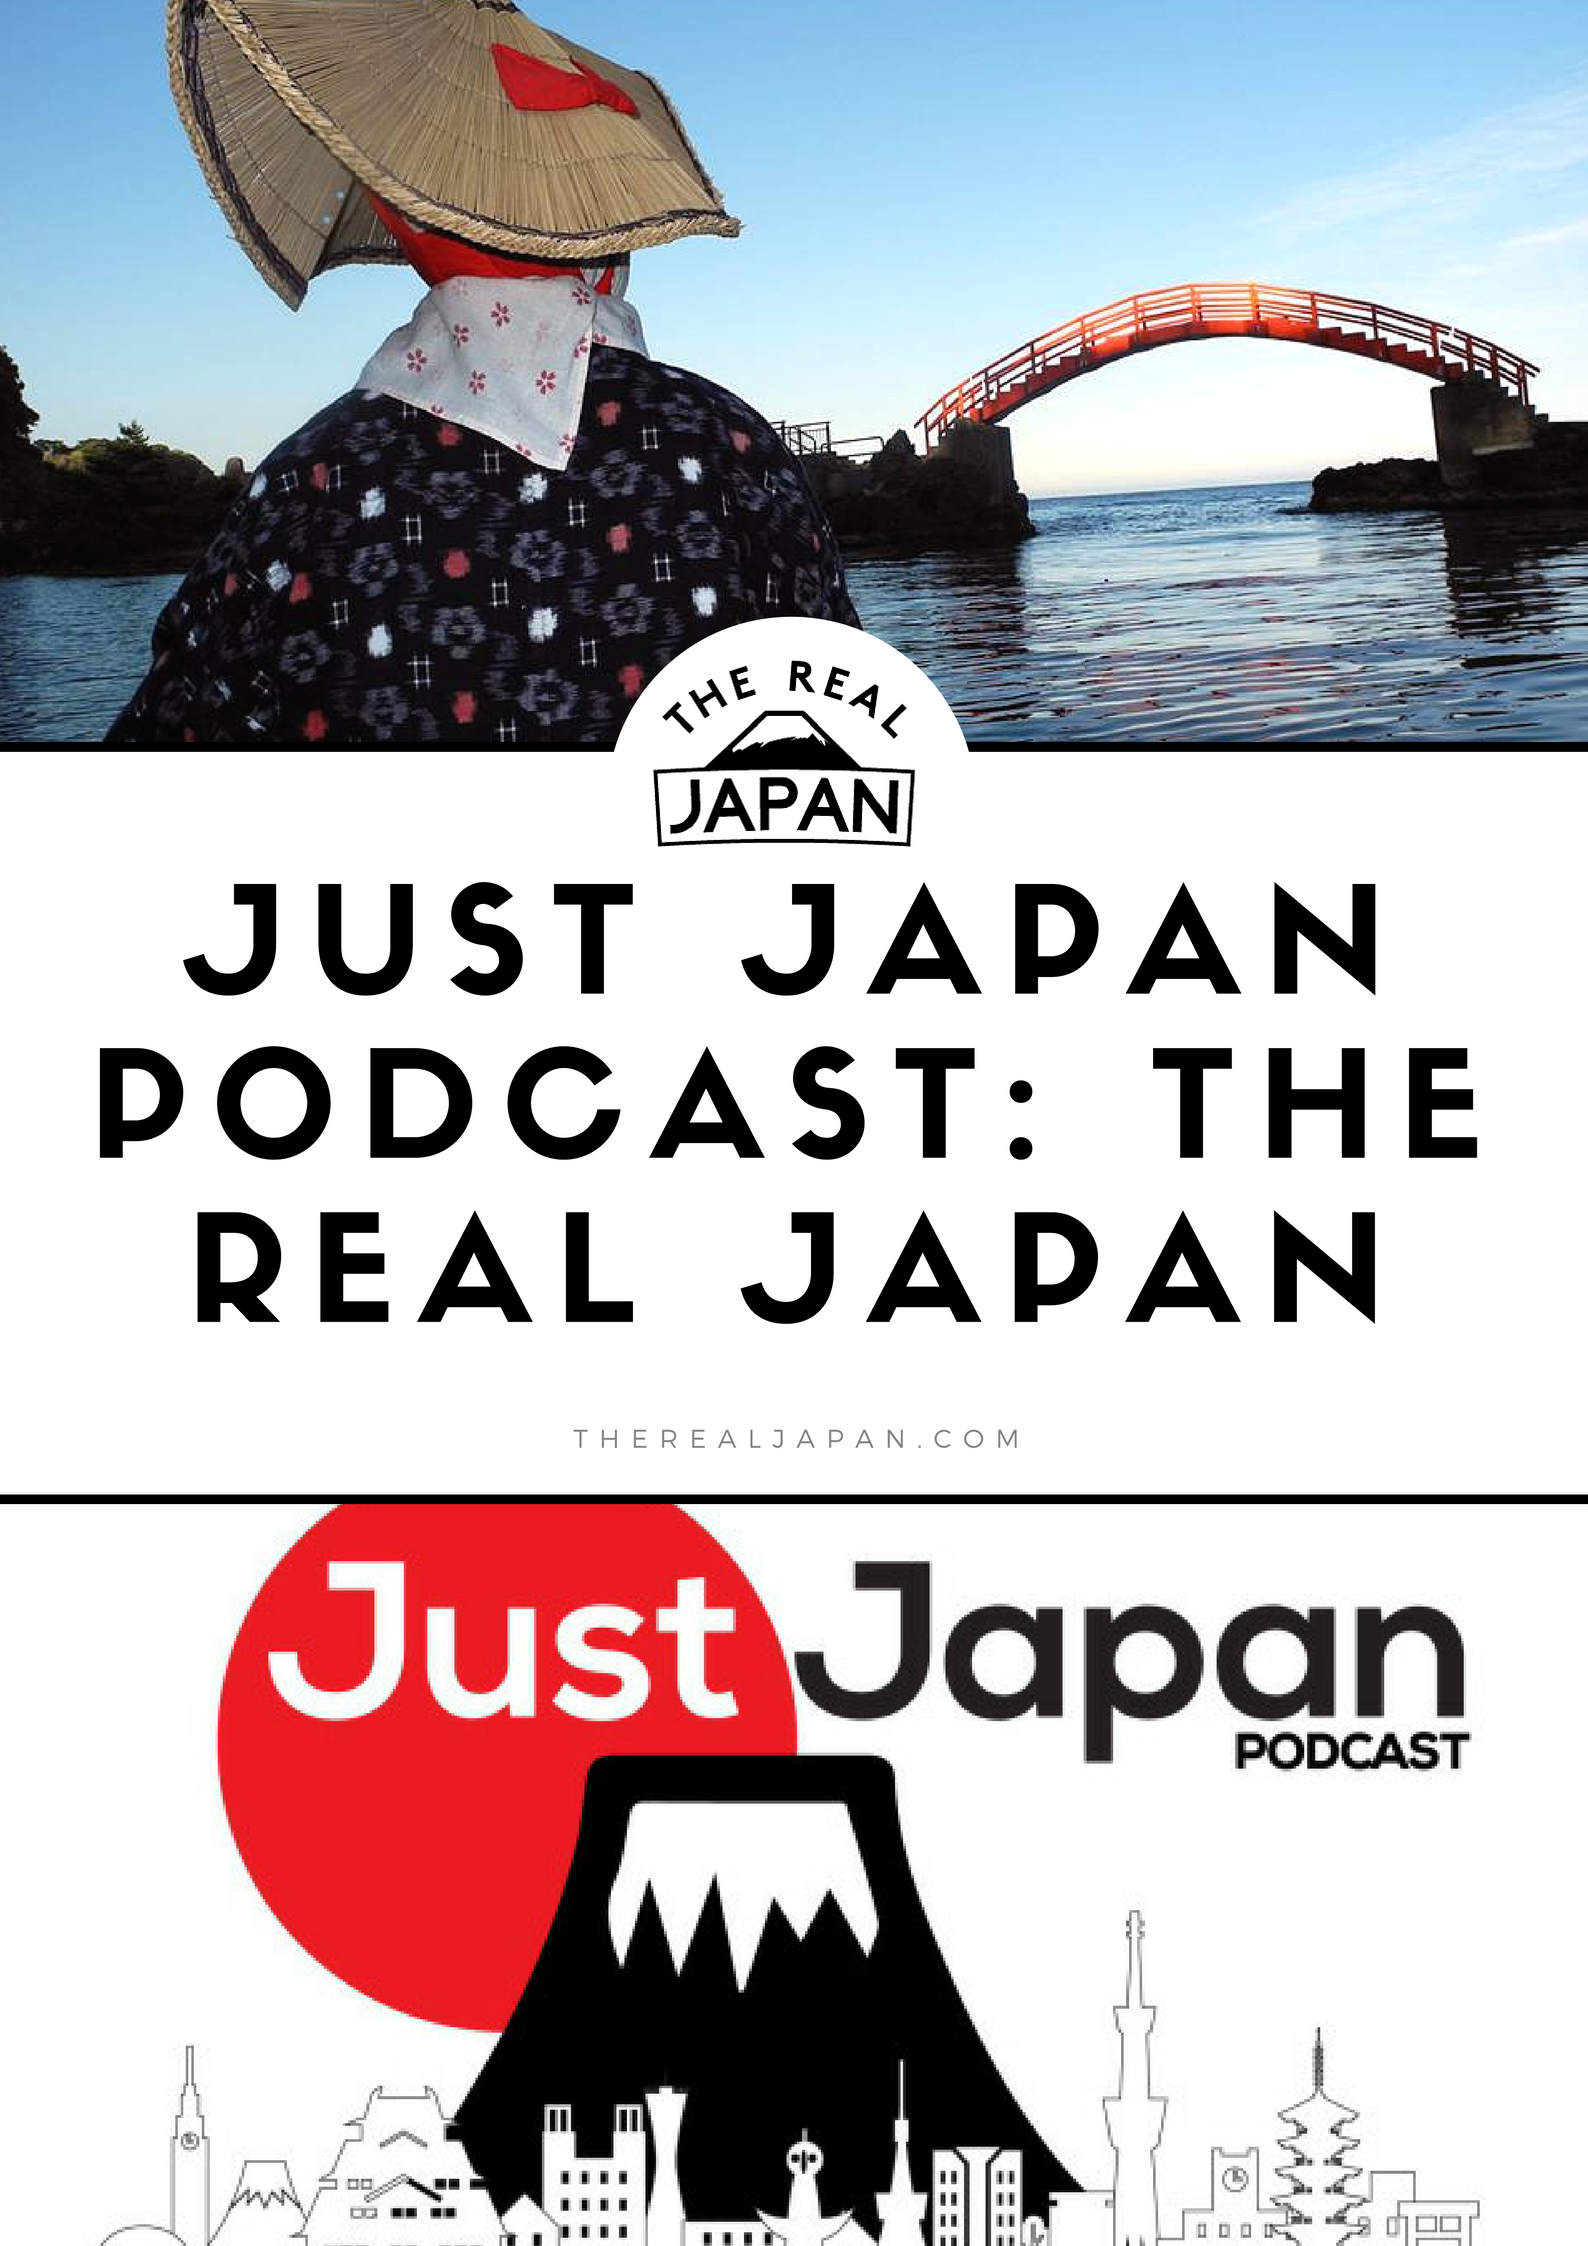 Just Japan Podcast The Real Japan Rob Dyer